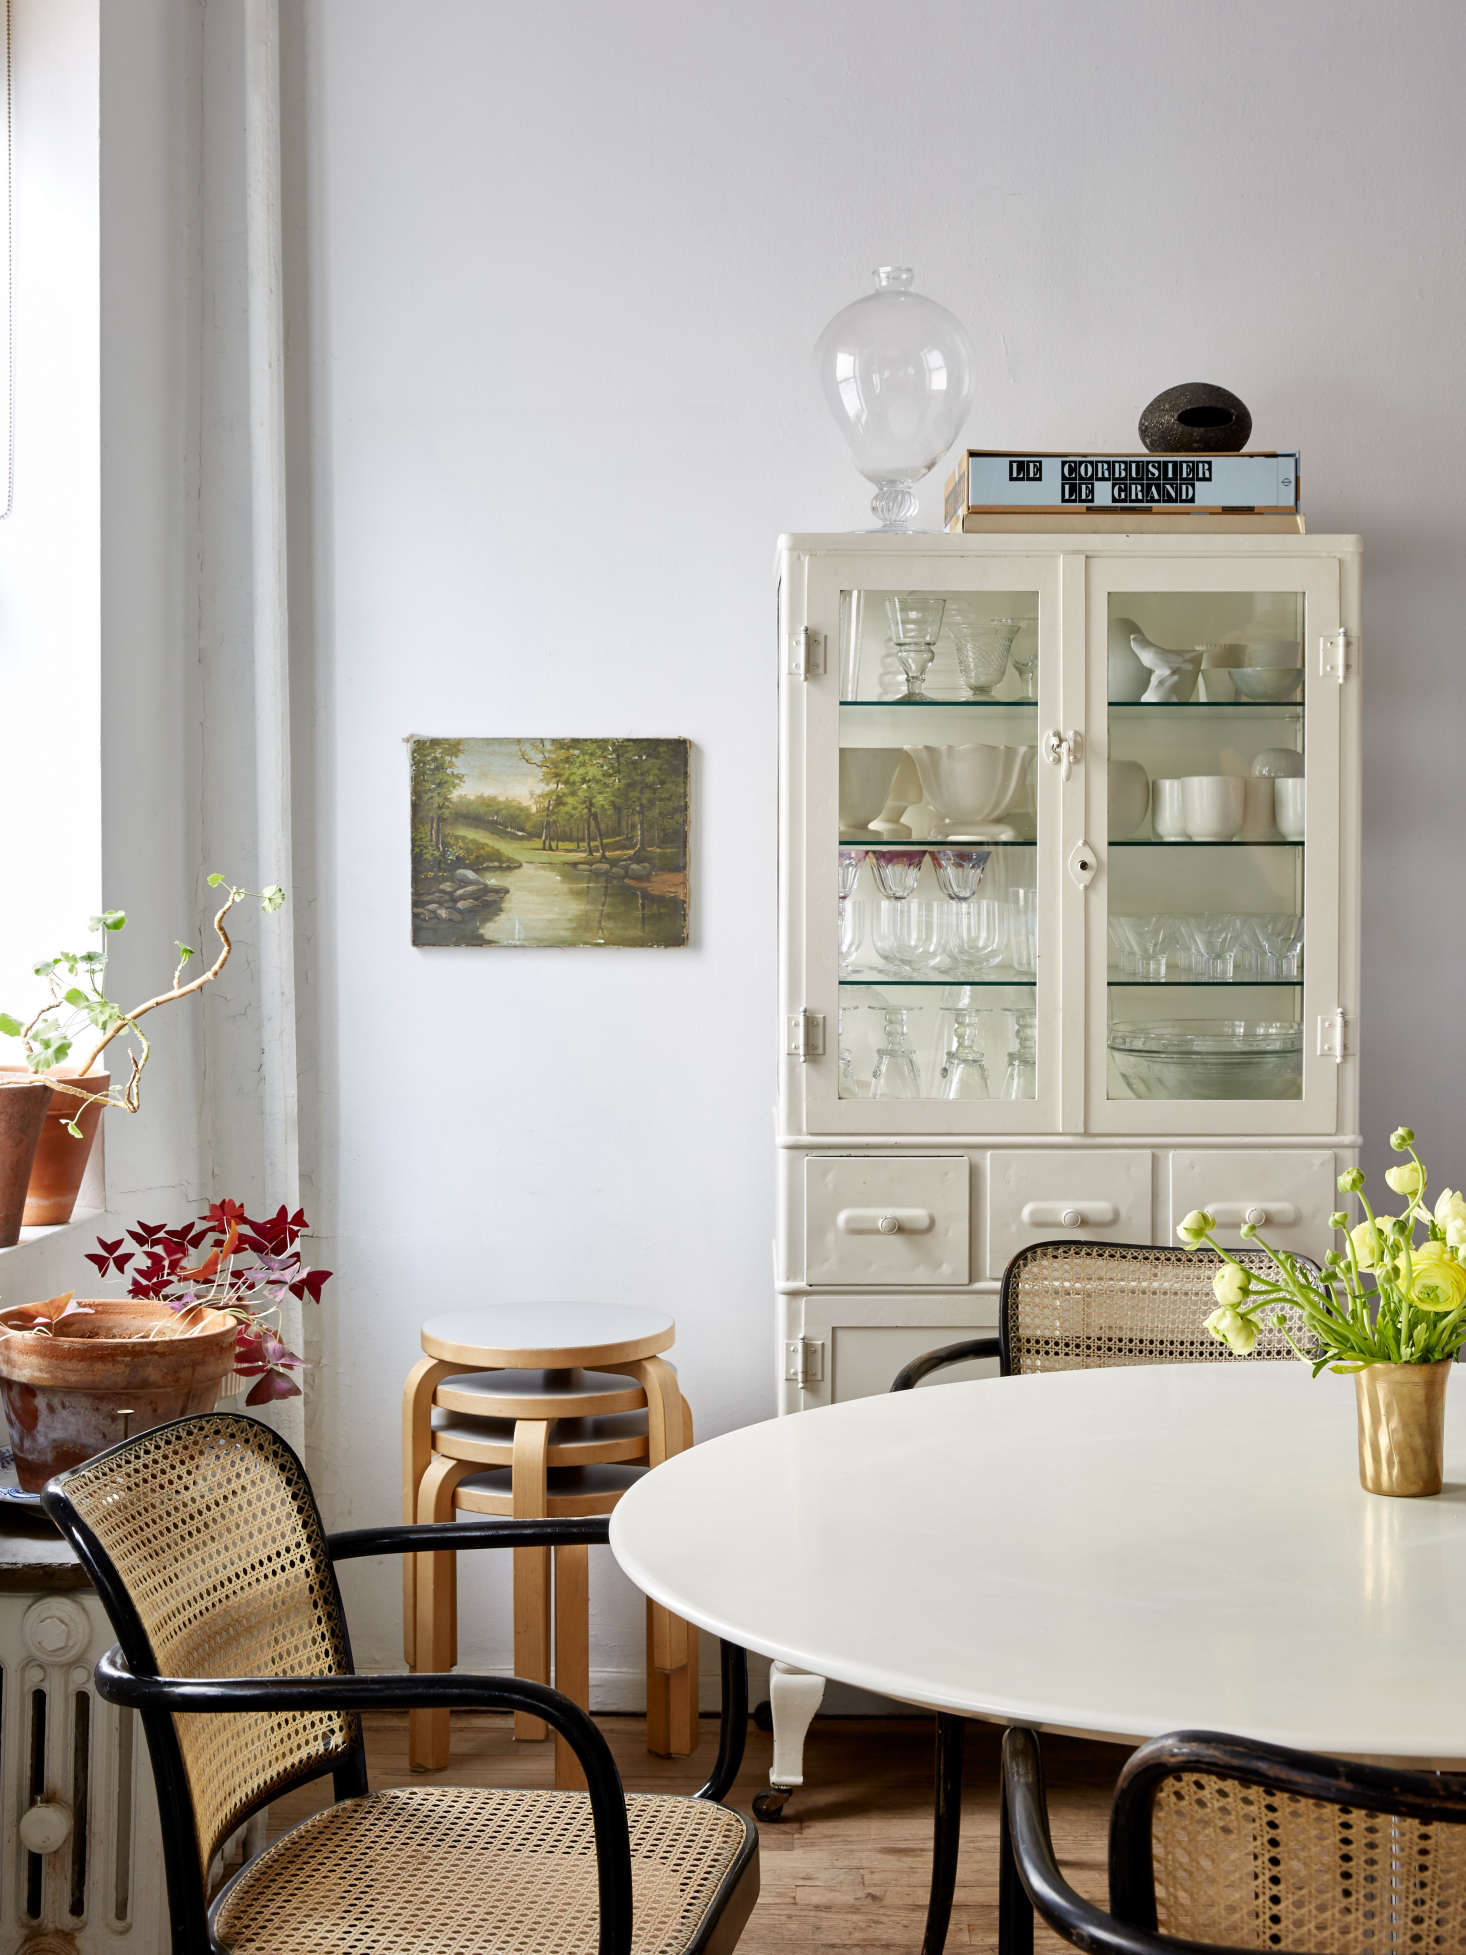 Small-space solutions: a vintage medical cabinet used as a display case